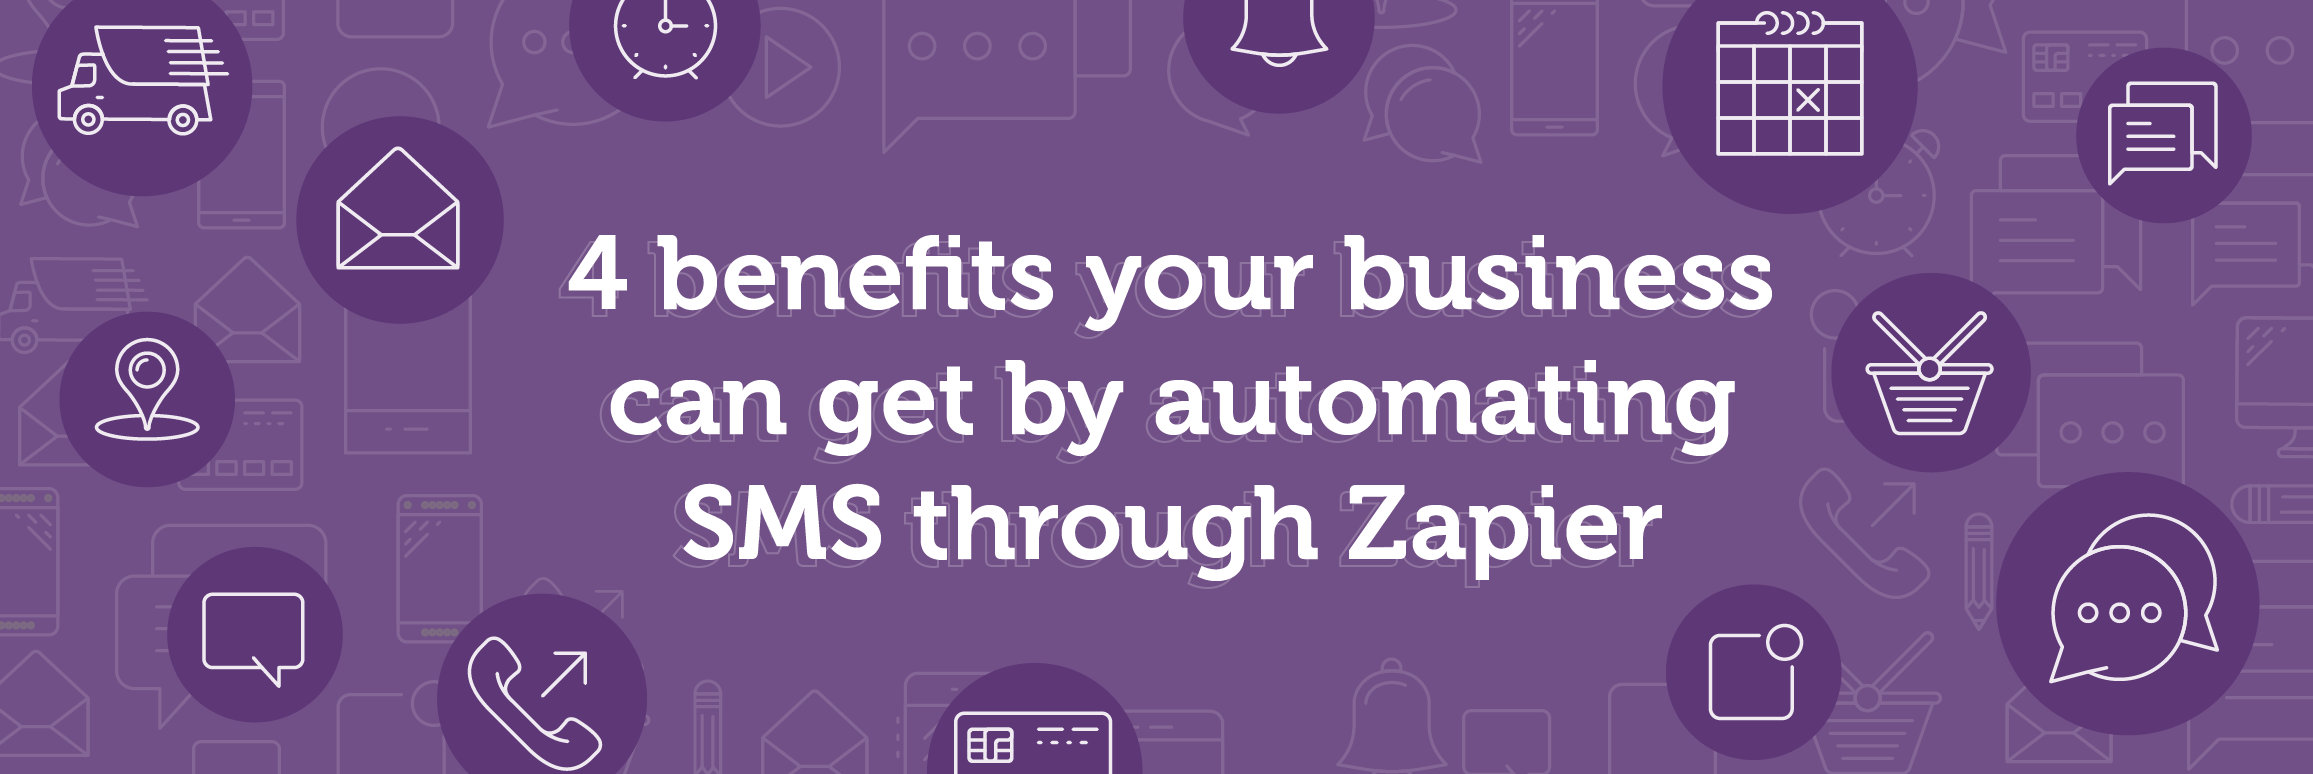 4 benefits your business can get by automating SMS through Zapier